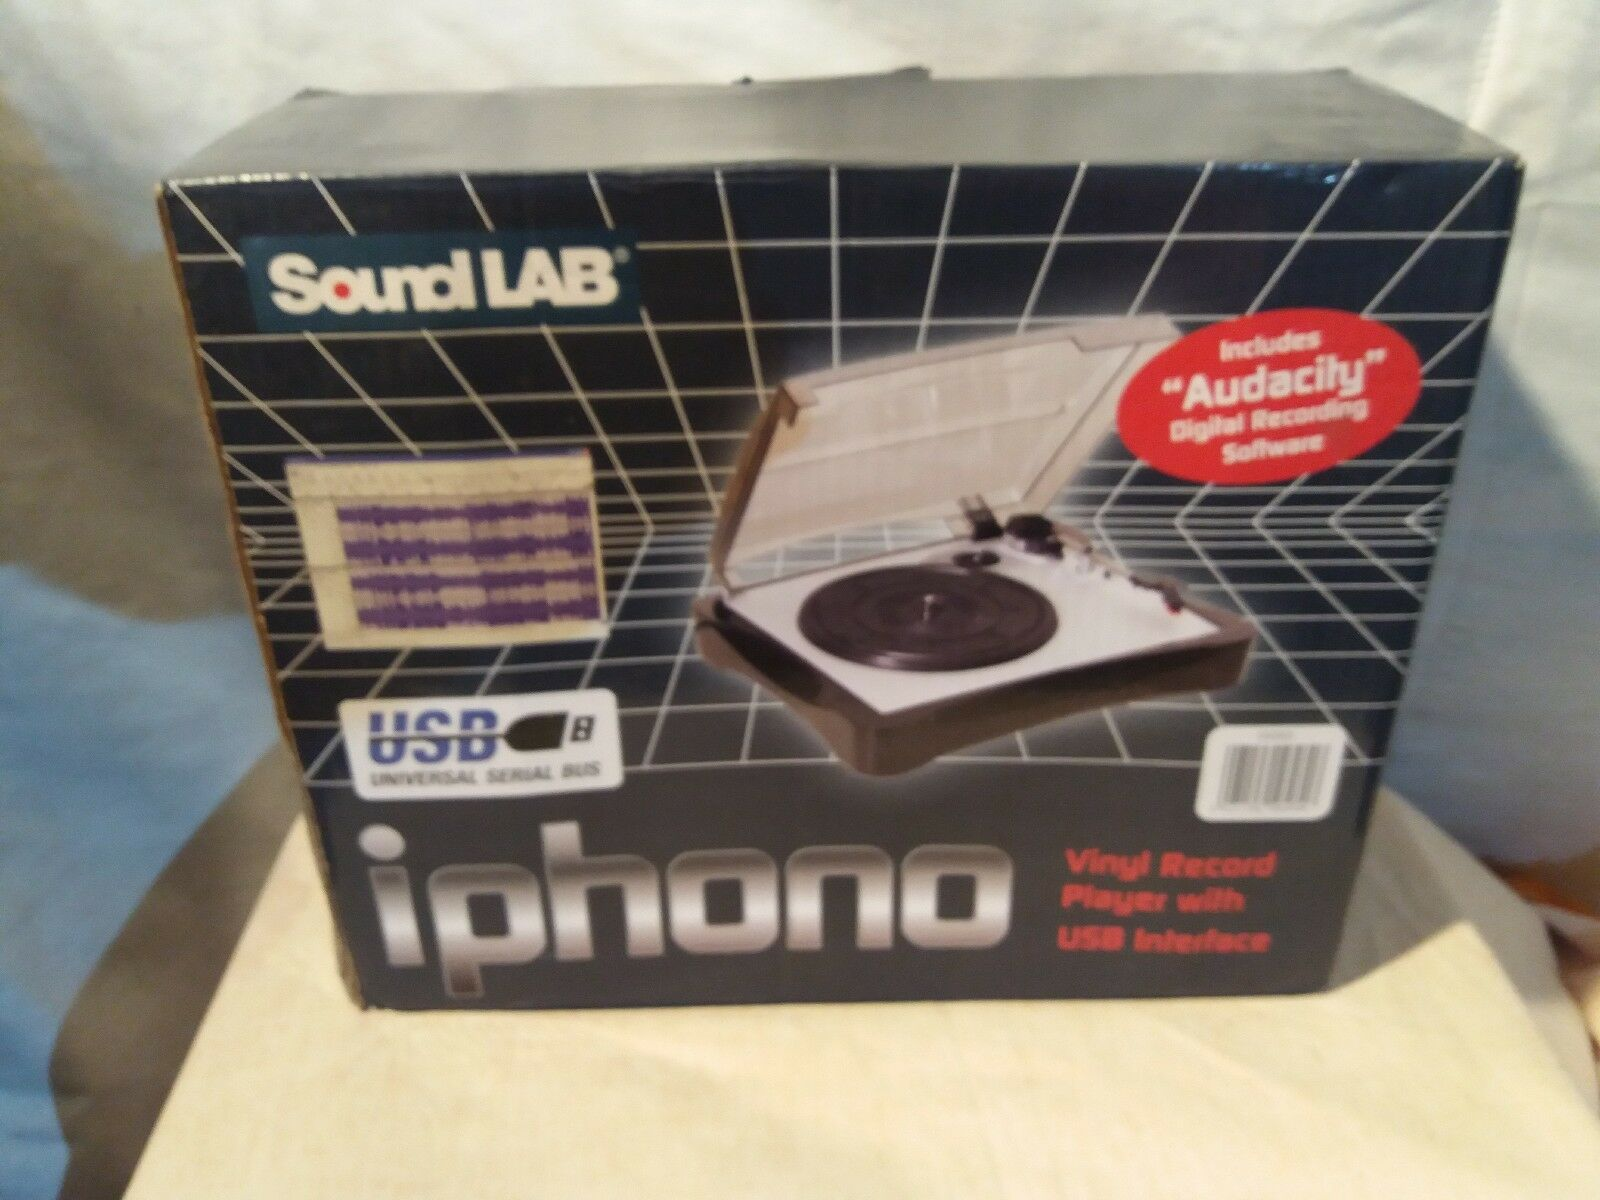 SOUNDLAB USB IPHONO TURNTABLE + Vinyl to MP3 SOFTWARE INCLUDED